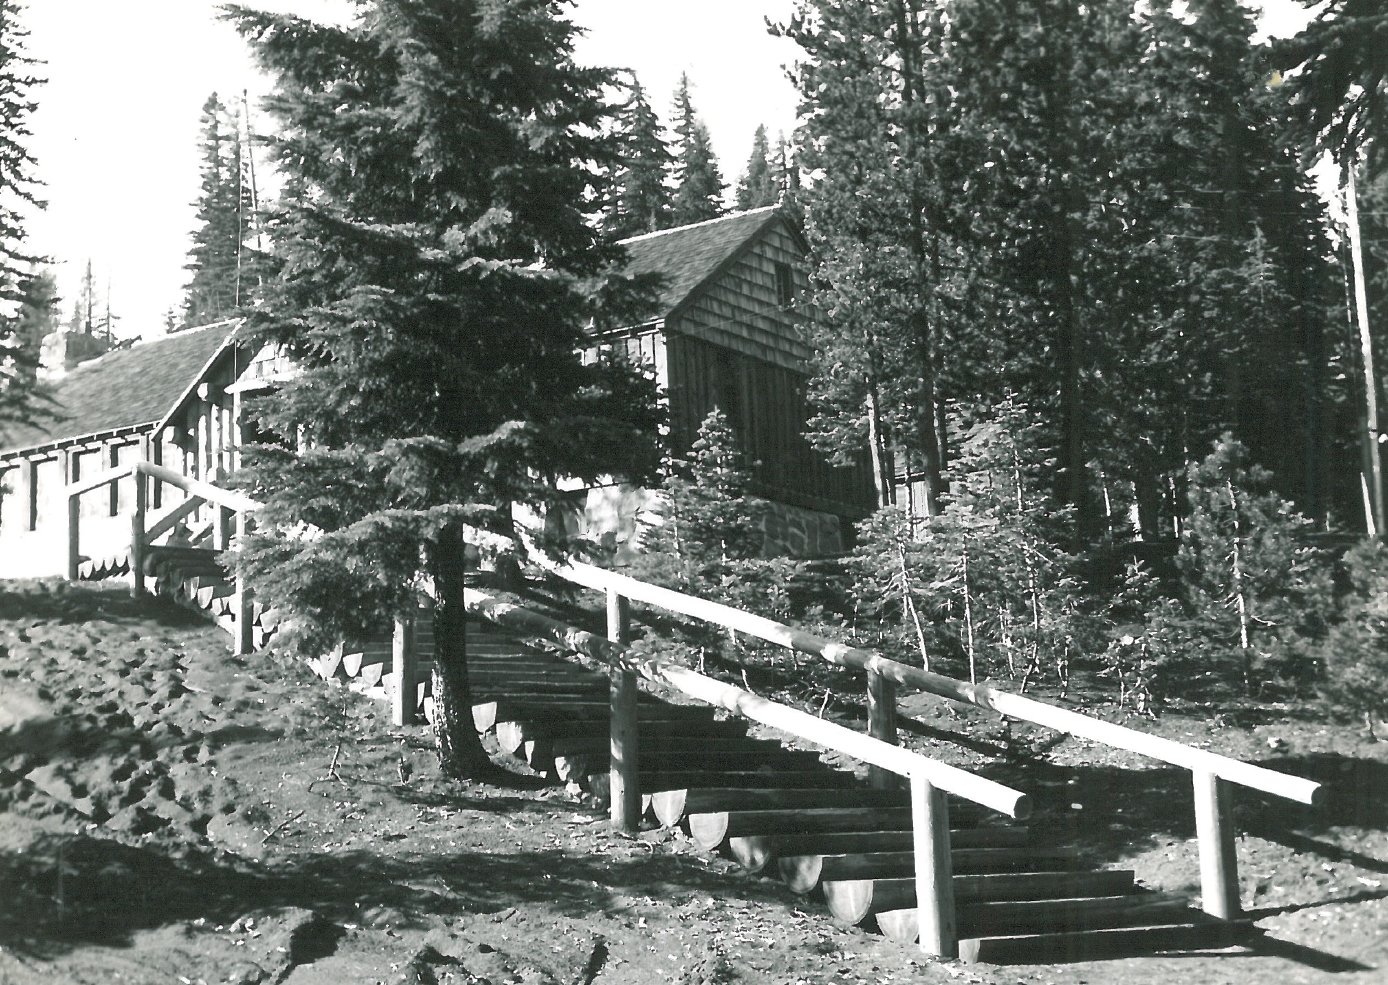 Black and white picture of a small wooden lodge